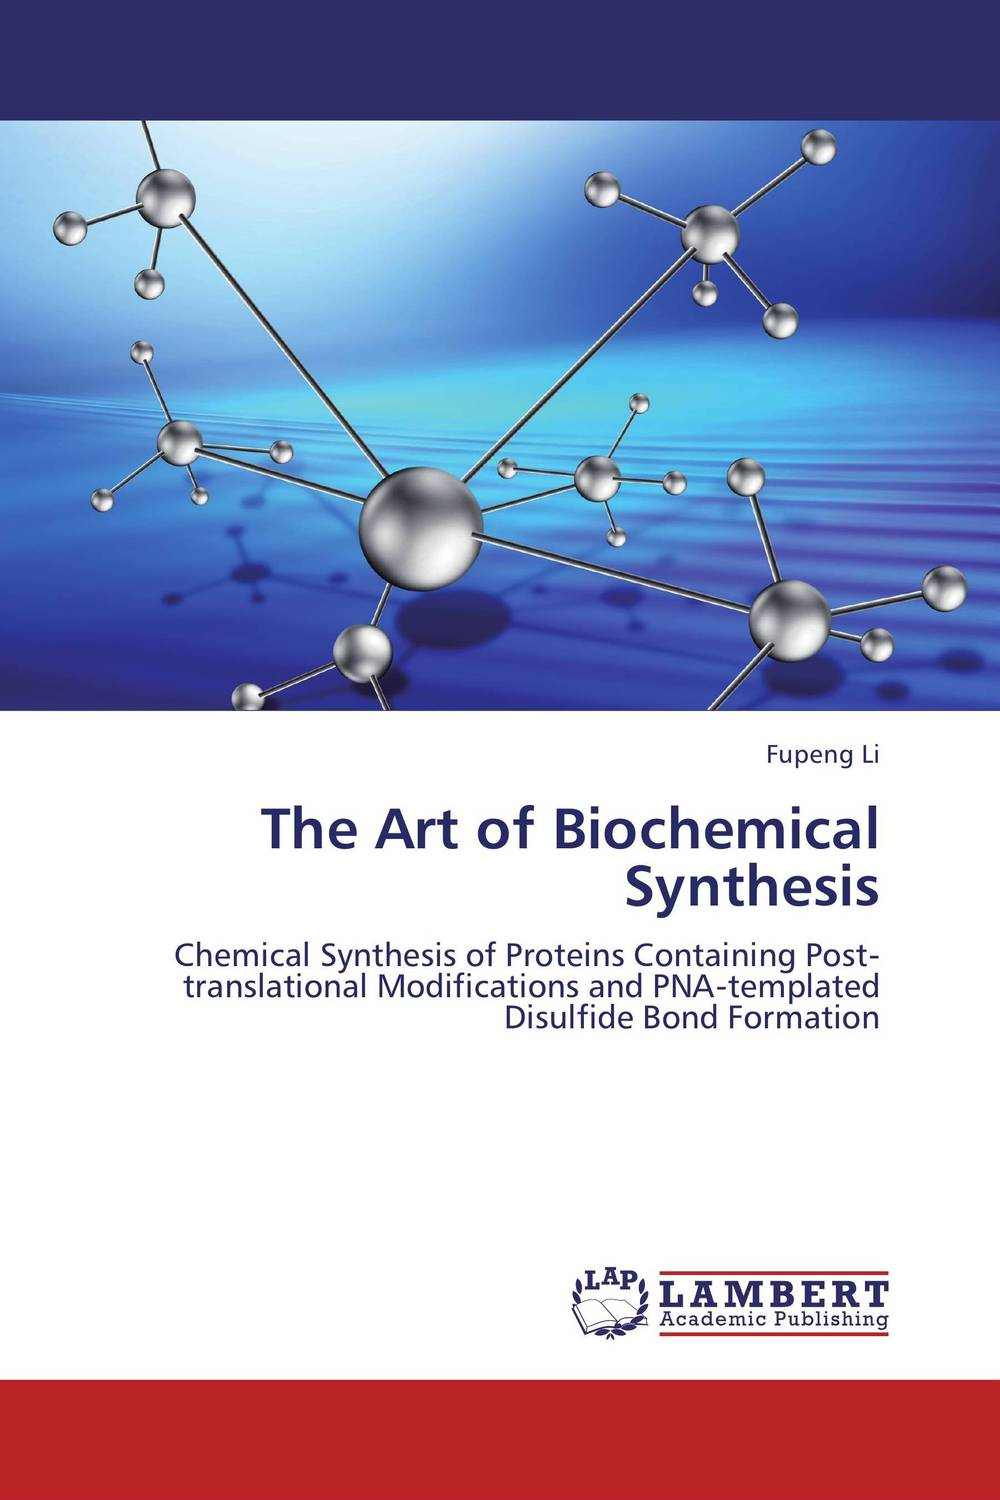 The Art of Biochemical Synthesis ene ene 11464